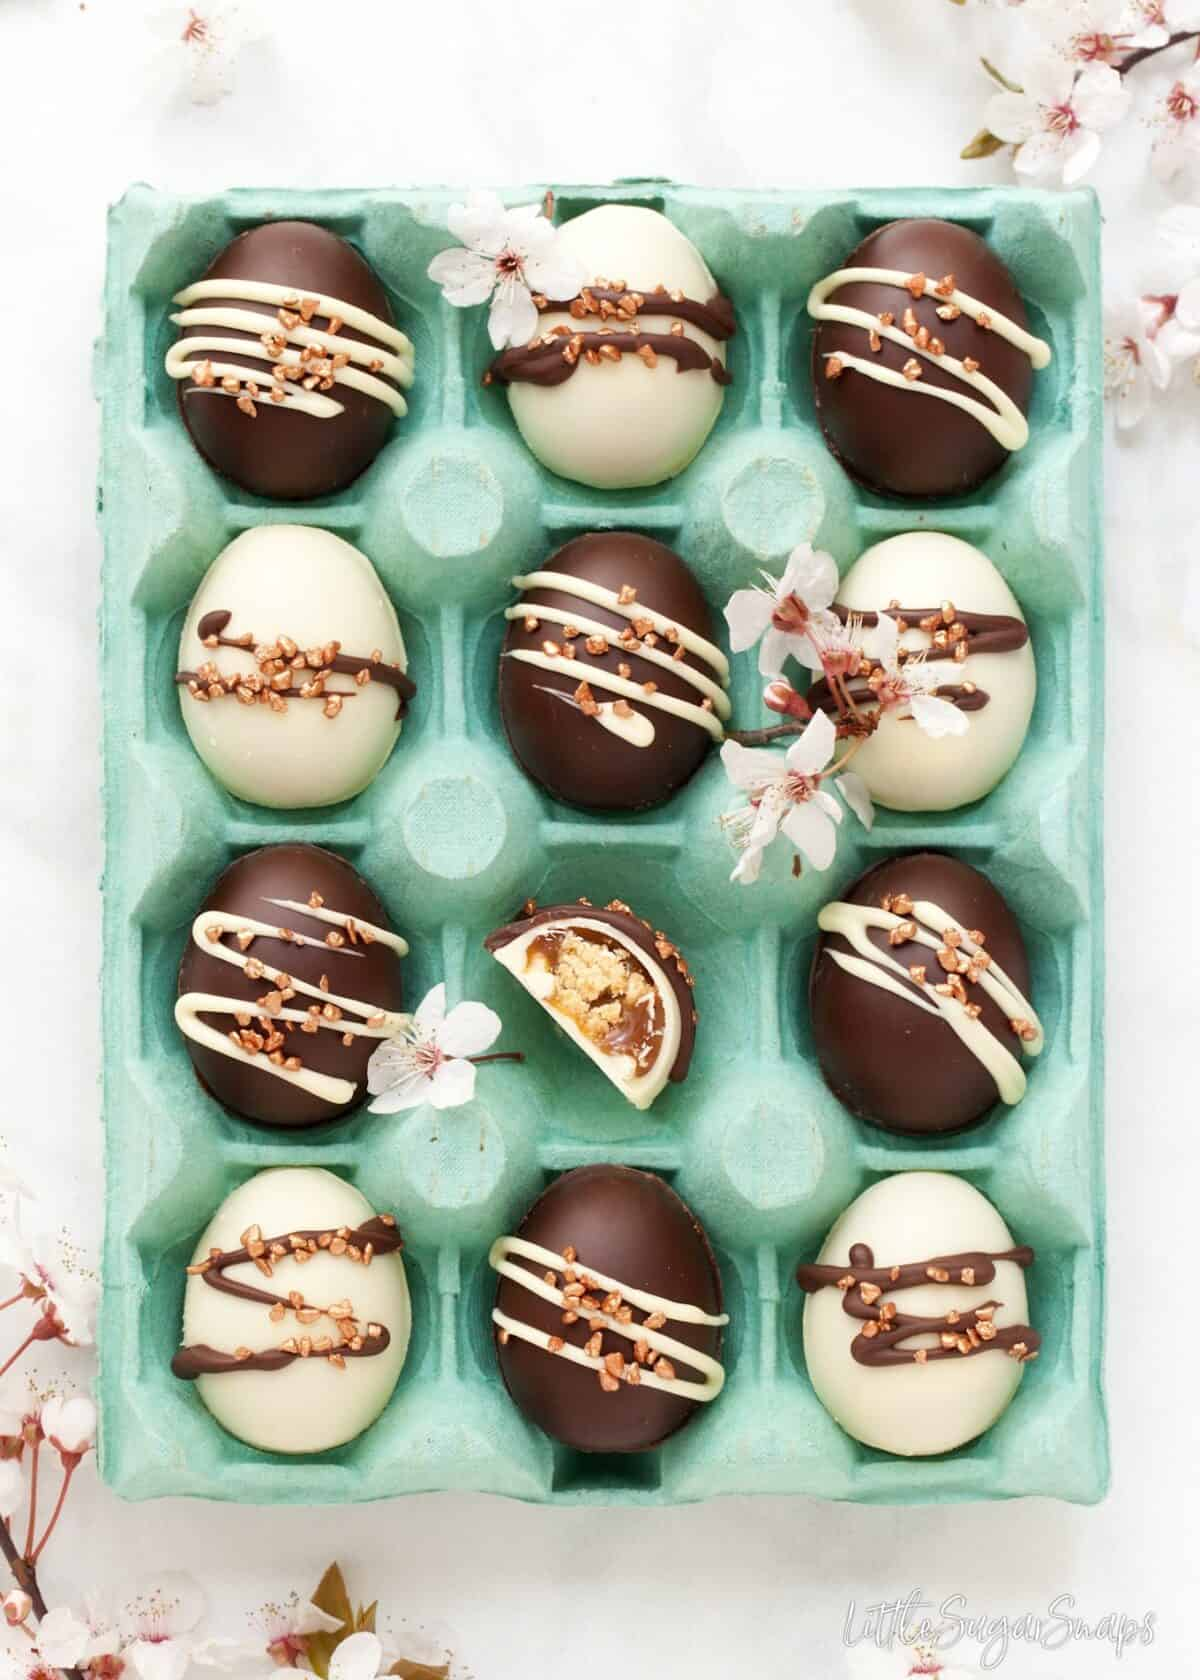 A blue egg box filled with chocolate caramel easter eggs made at home using and Easter egg recipe. Cherry blossom surrounding the eggbox